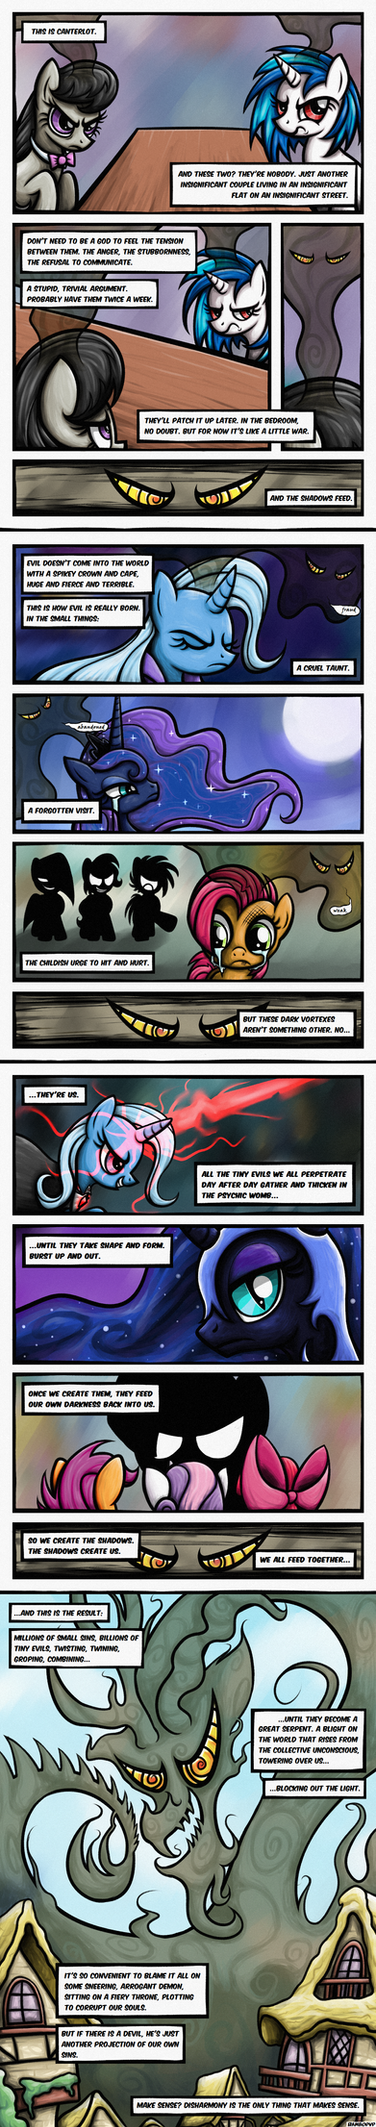 [Comic] Logic of a Mad God by Rambopvp